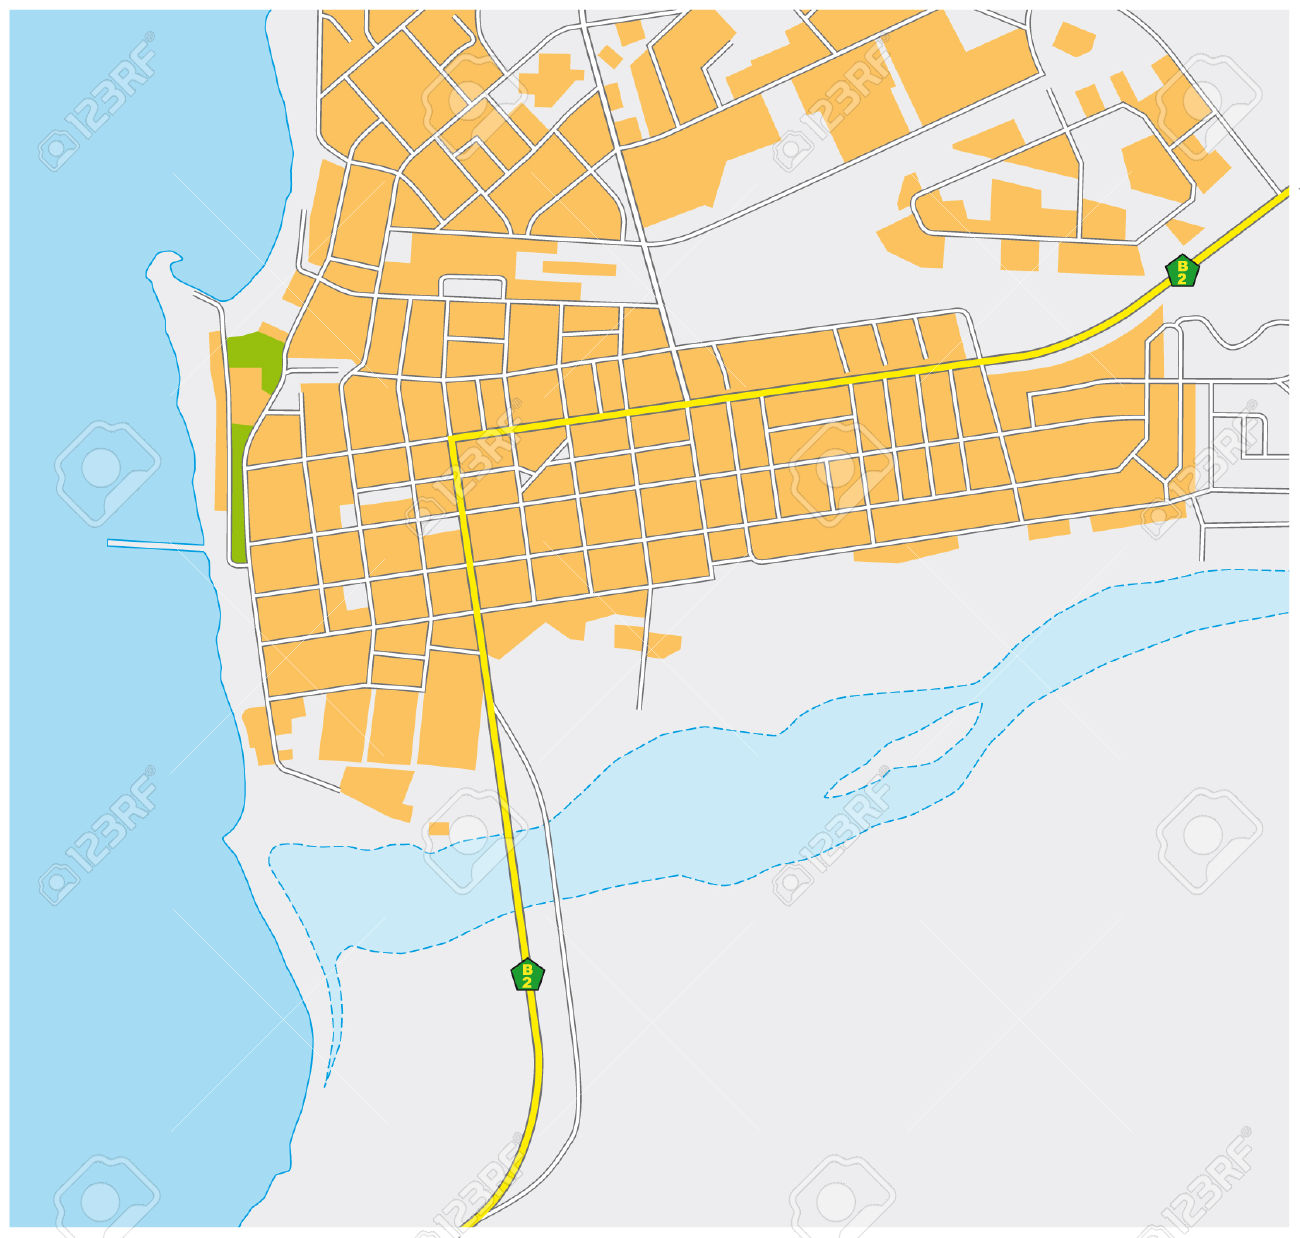 Swakopmund City Map Royalty Free Cliparts, Vectors, And Stock.